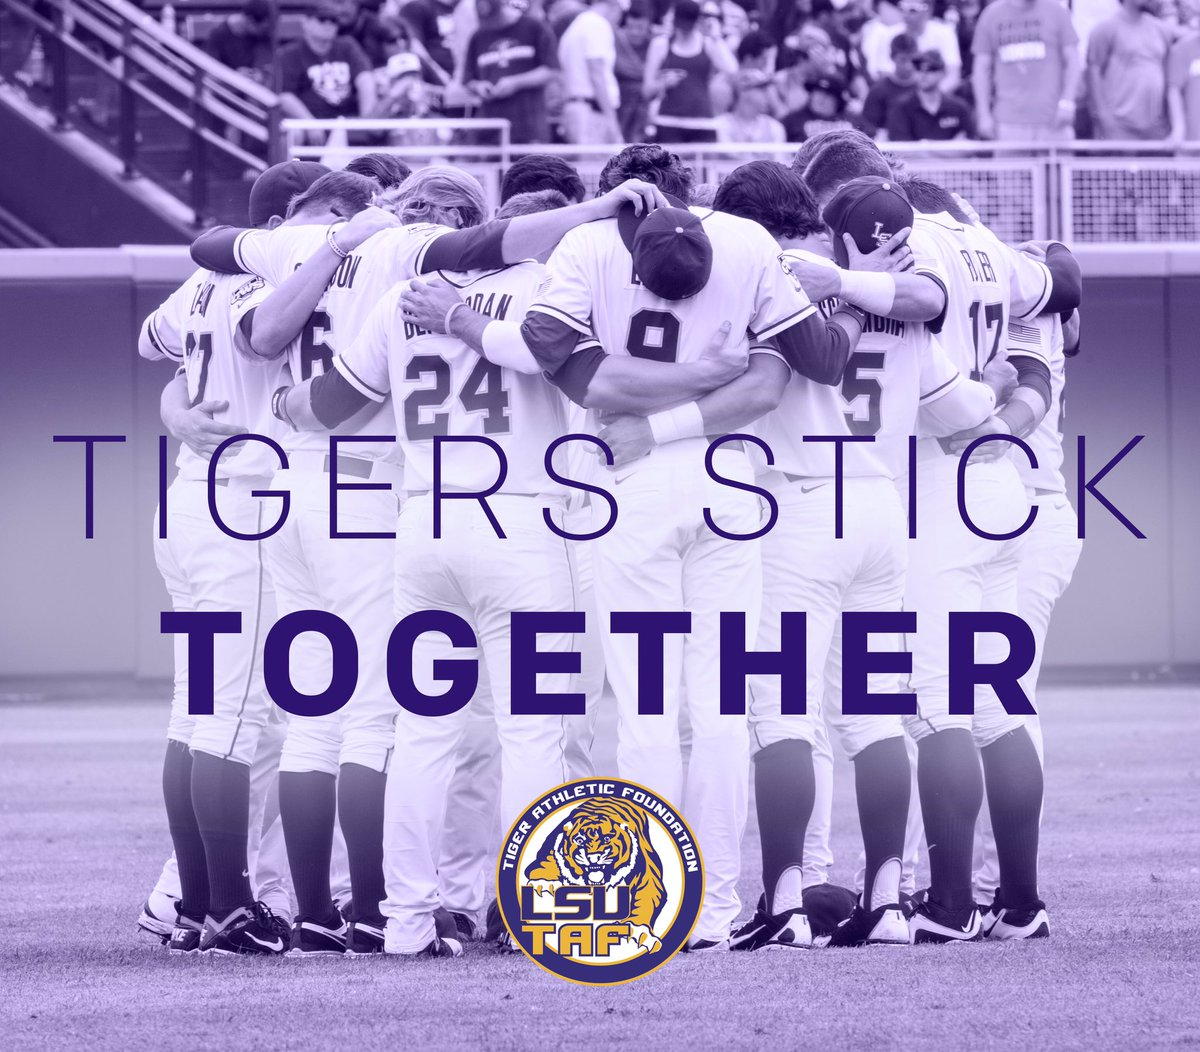 It's times like these that Tigers stick together!   Our hearts are heavy & our thoughts are with those impacted. https://t.co/LbTFG772Yn